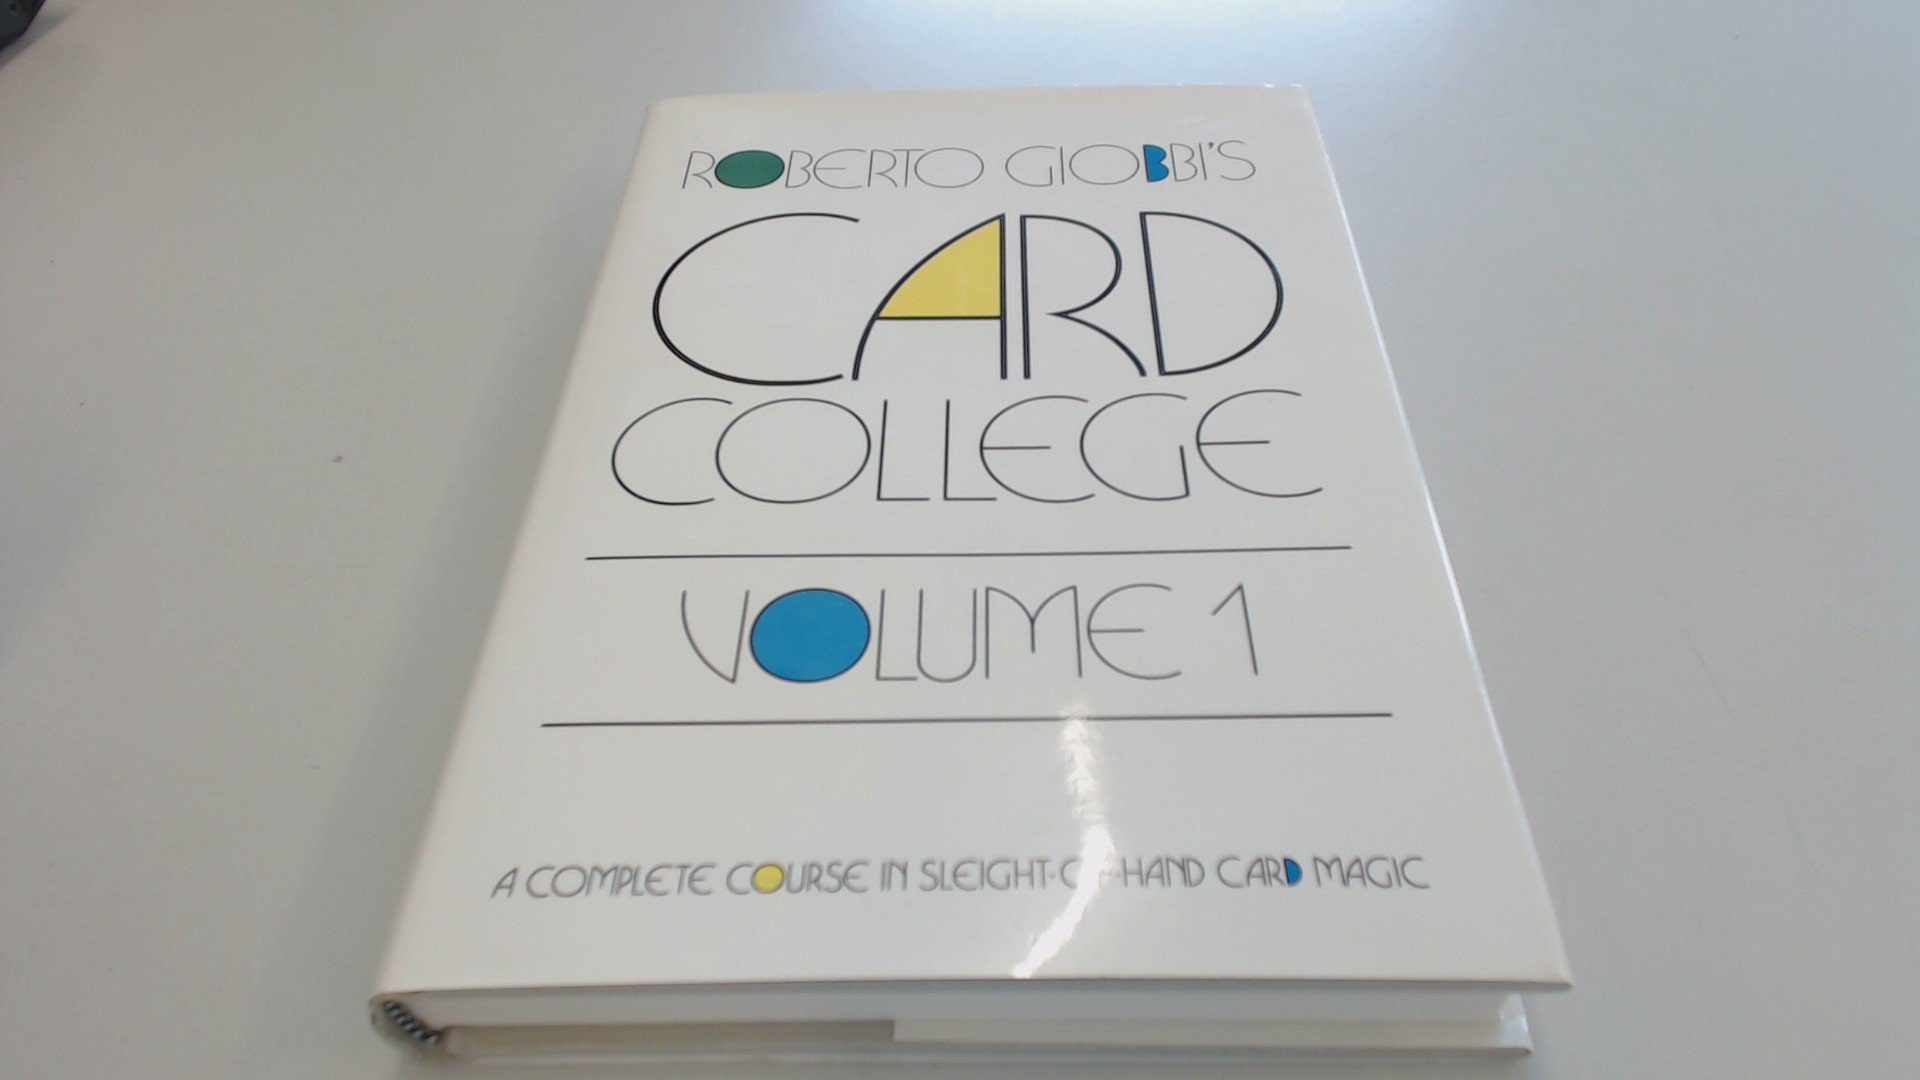 Card College, Vol. 1: A Complete Course in Sleight-of-Hand Card Magic